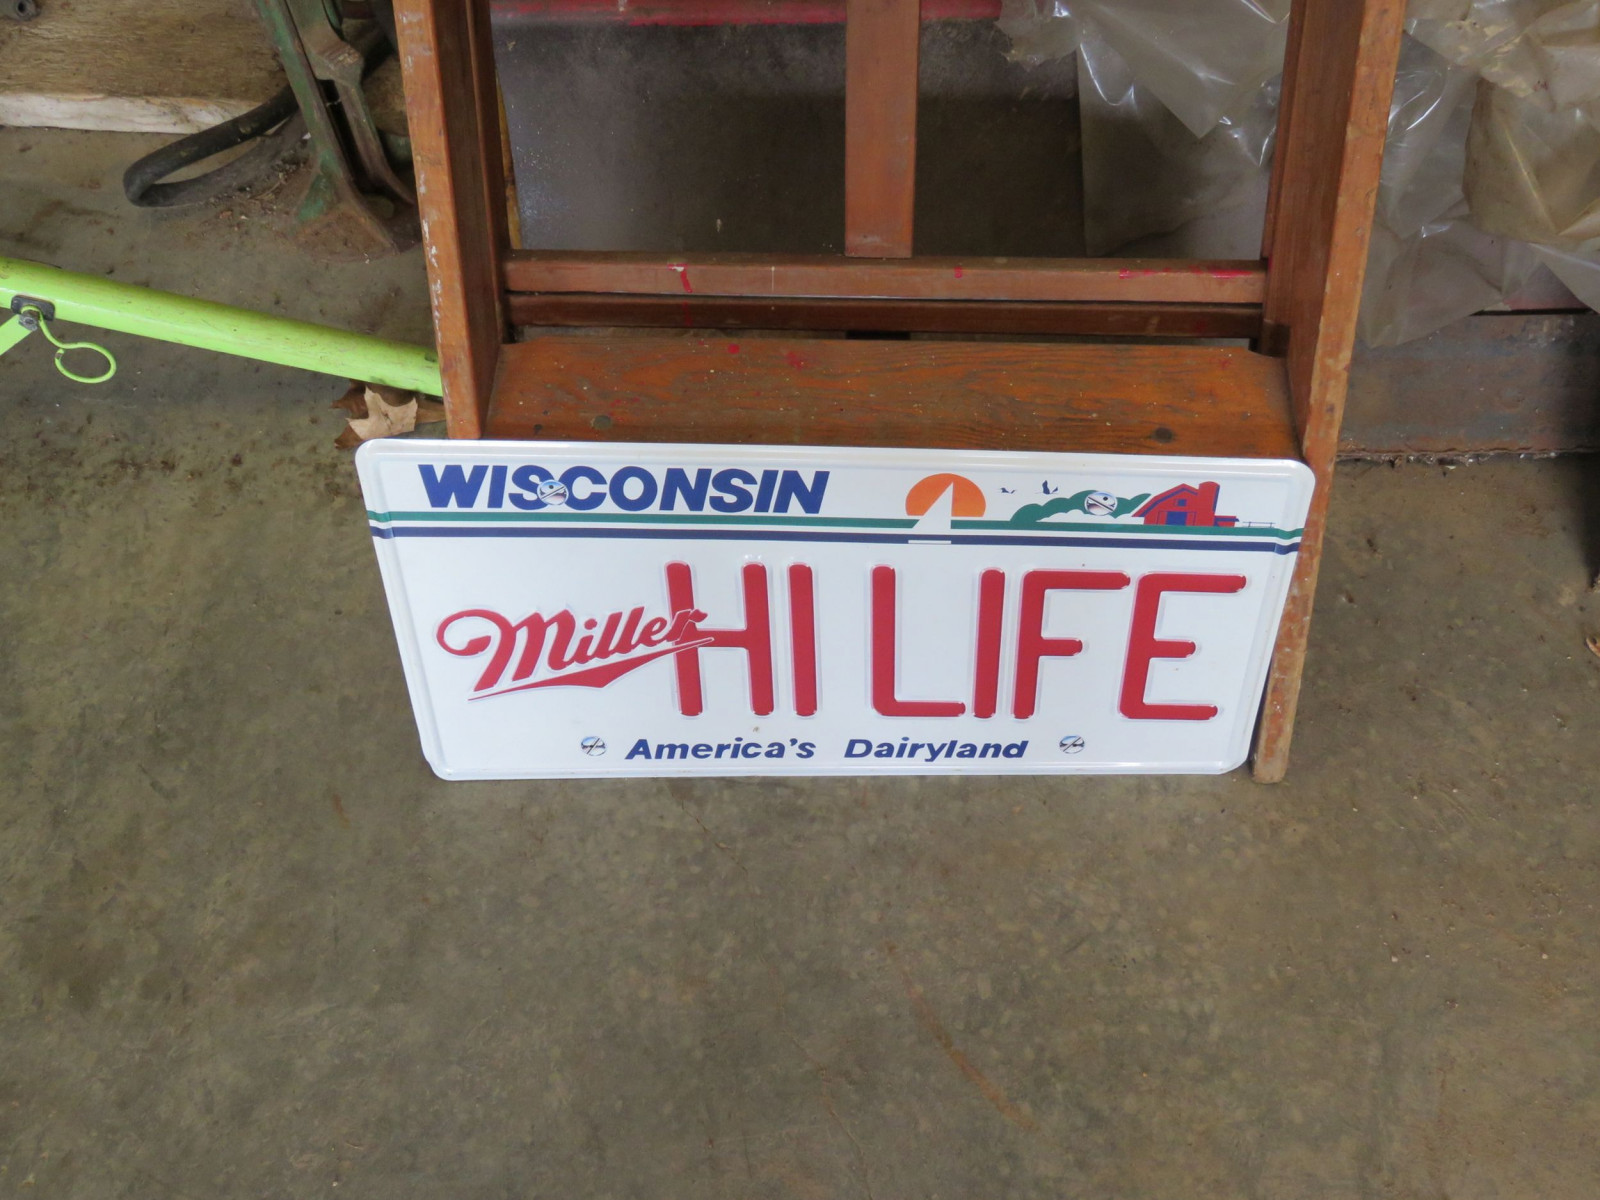 Miller High Life Single Sided Pressed Tin Sign - Image 1